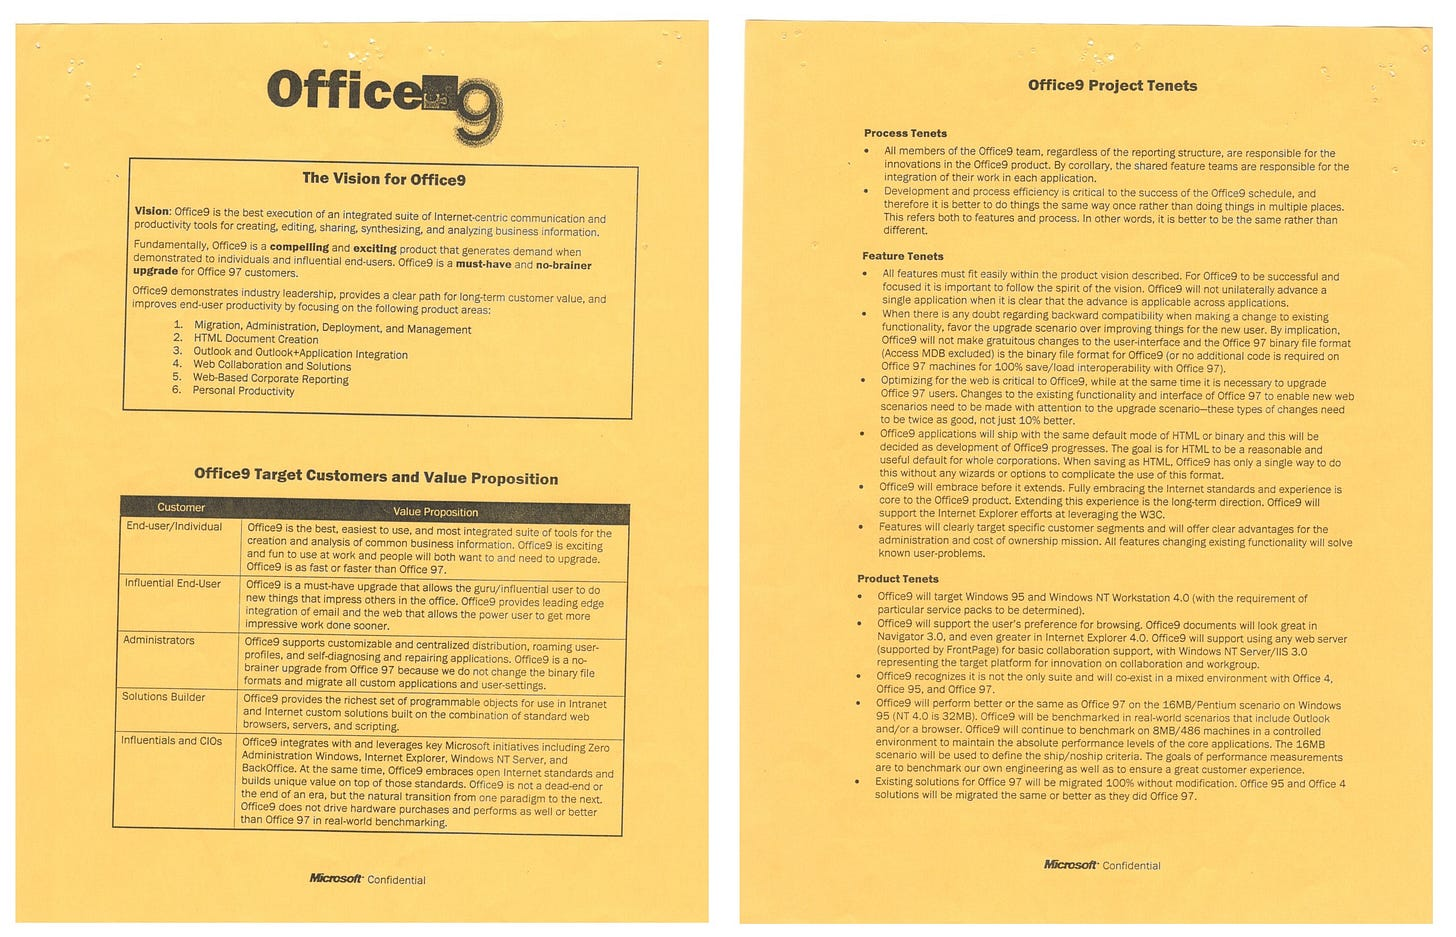 Office9 Cheat Sheet - scanned image